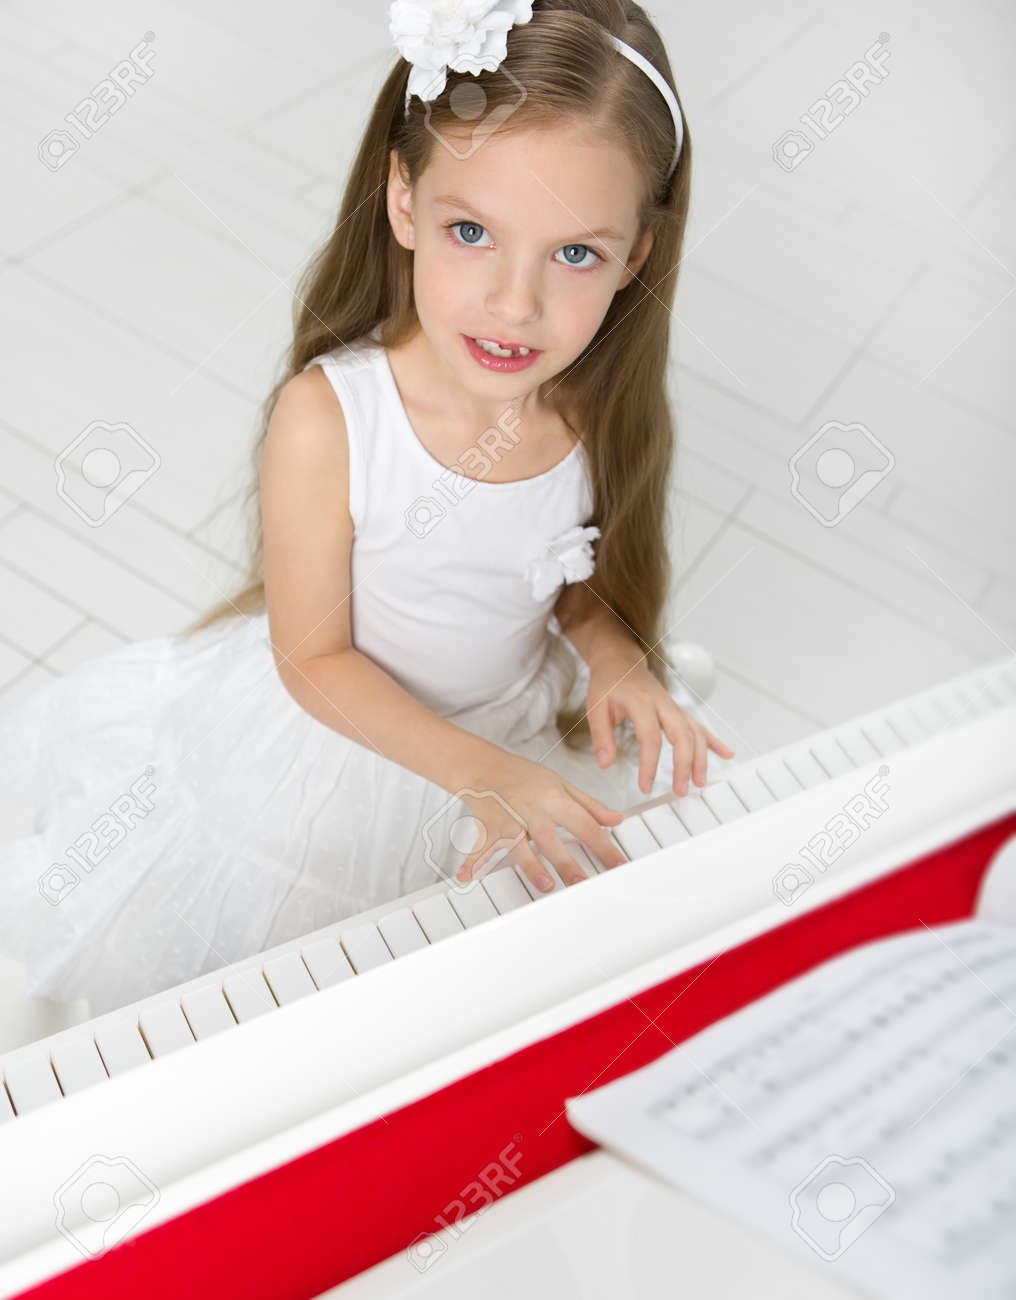 Portrait of girl in white dress playing piano. Concept of music study and leisure Stock Photo - 24481068